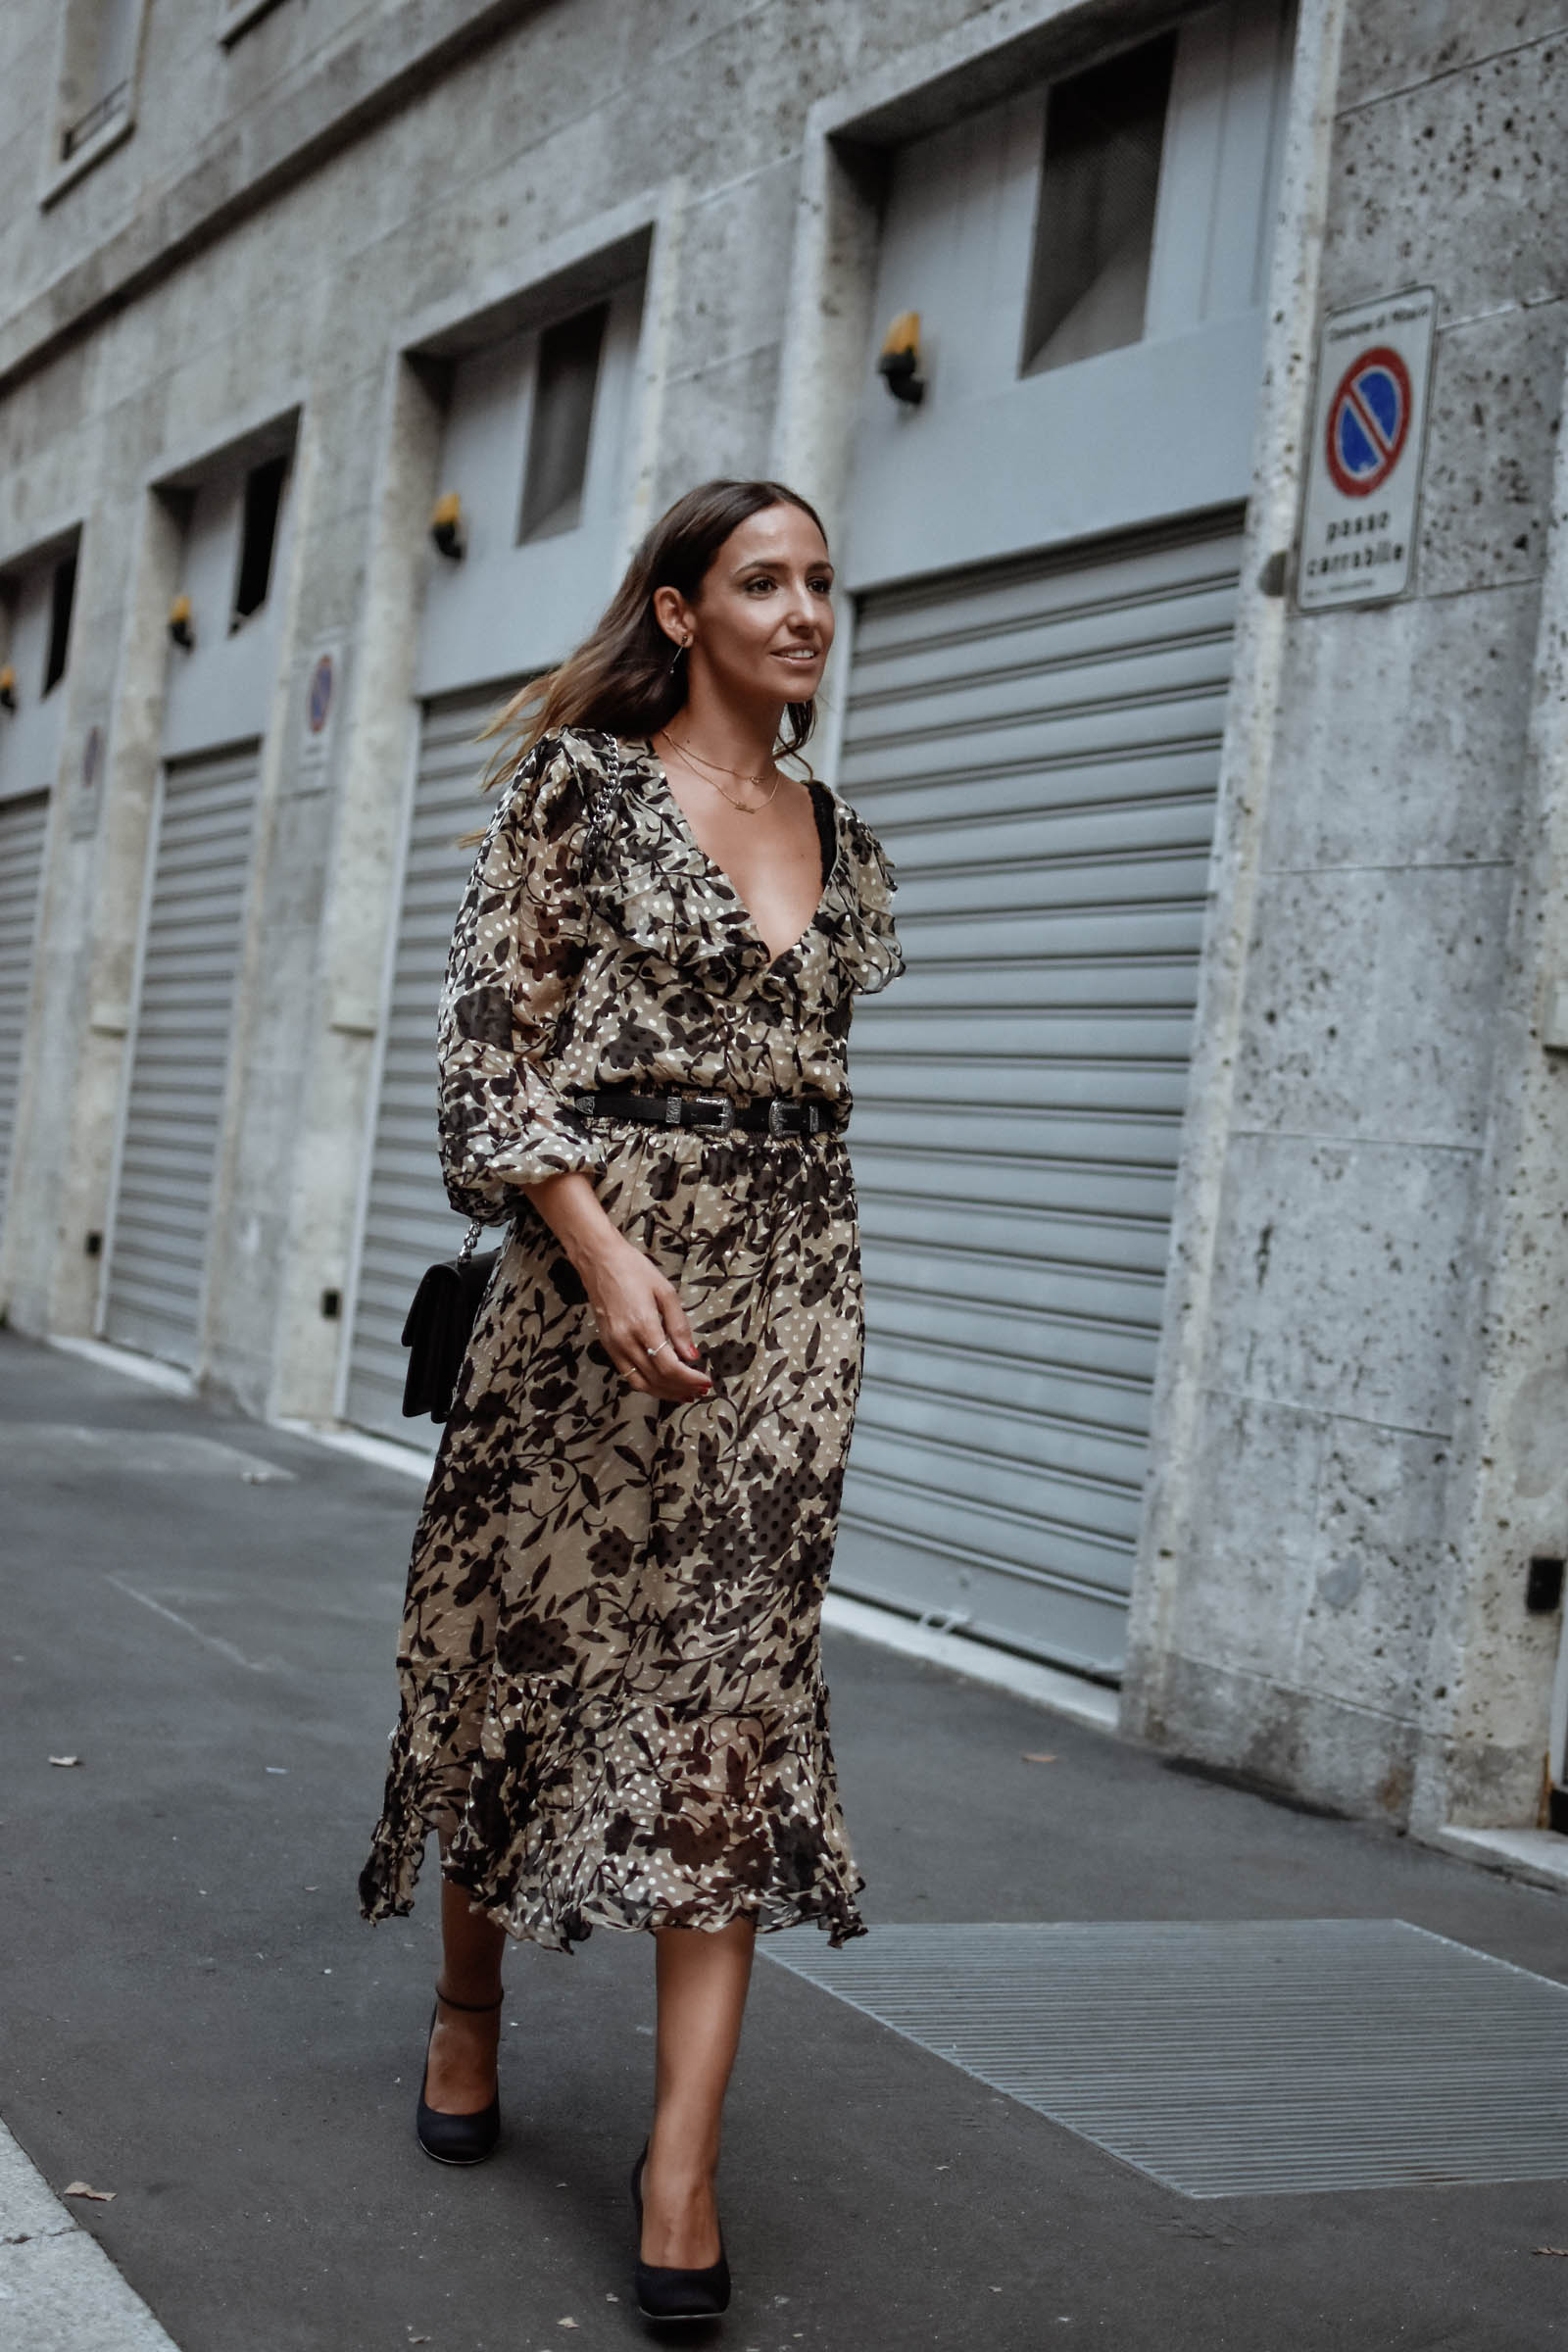 el-blog-de-silvia-rodriguez-street-style-mfw-fashion-show-alessandro-enrique-milan-fashion-week-revolve-look-blogger